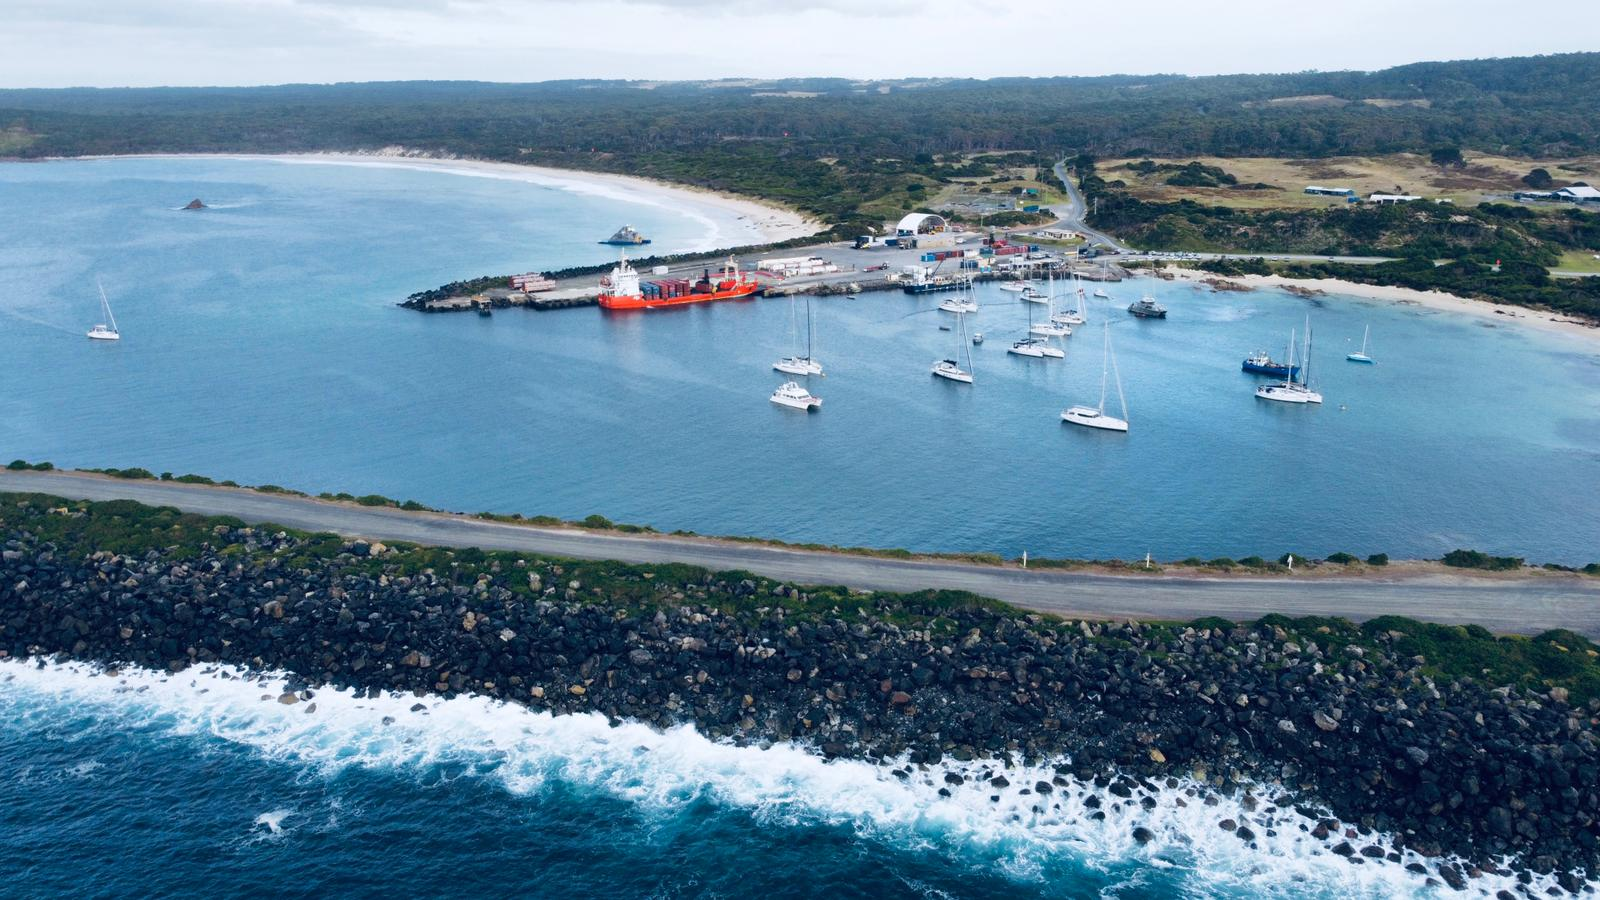 End destination beautiful Grassy Harbour - ORCV media pic - King Island Race.